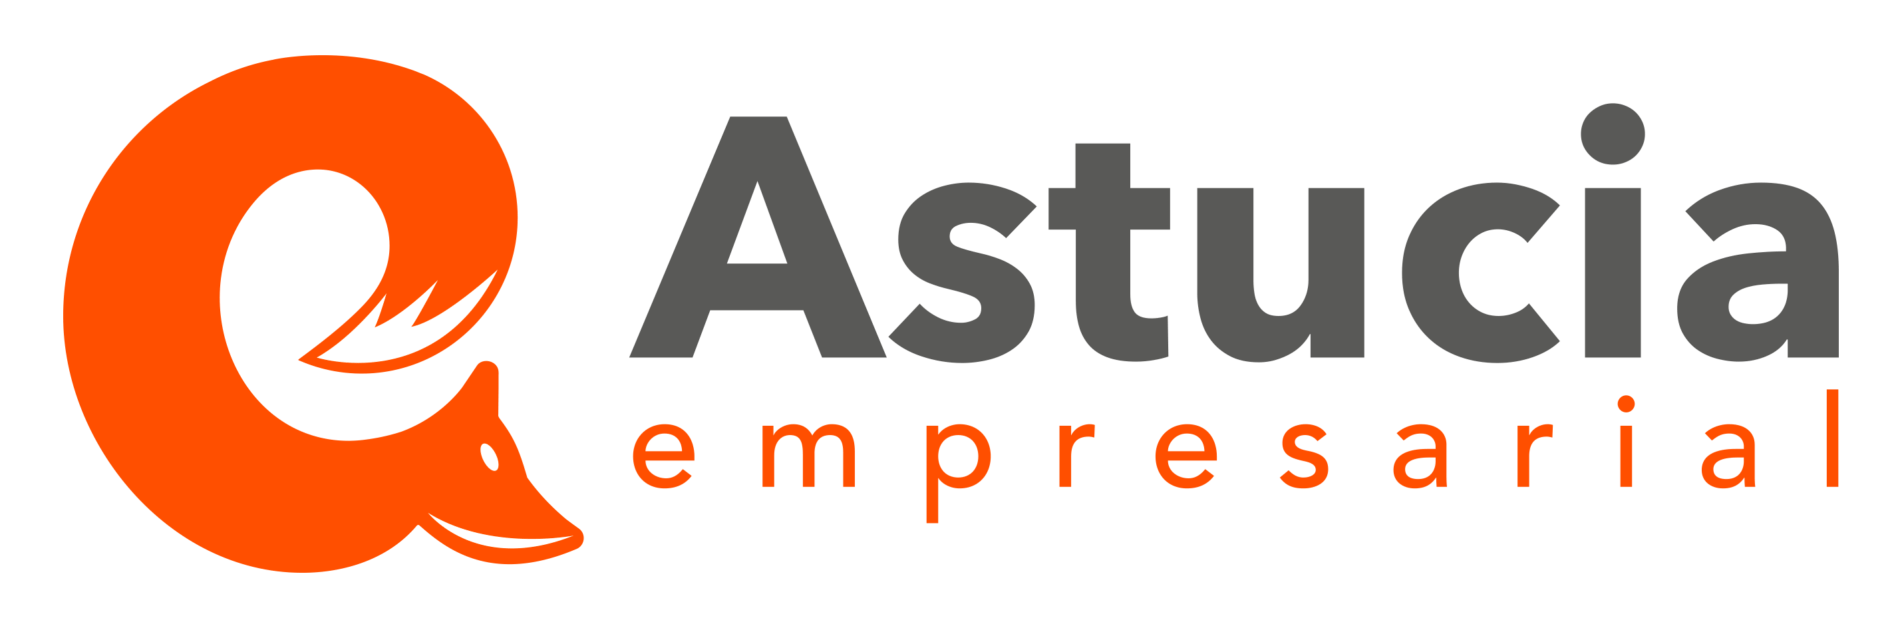 Astucia Empresarial